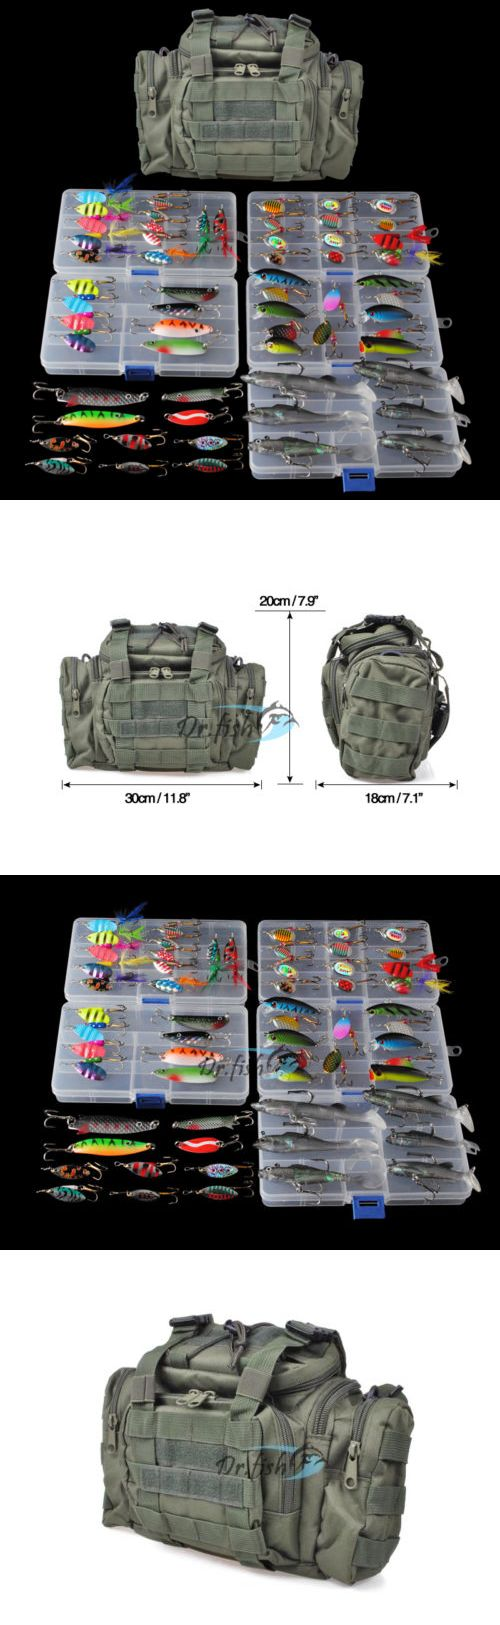 Tackle Boxes and Bags 22696: Fishing Tackle Bag Full With 5 Trays 60 Spinners Spoon Crankbait Huge Gear Kit -> BUY IT NOW ONLY: $64.98 on eBay!